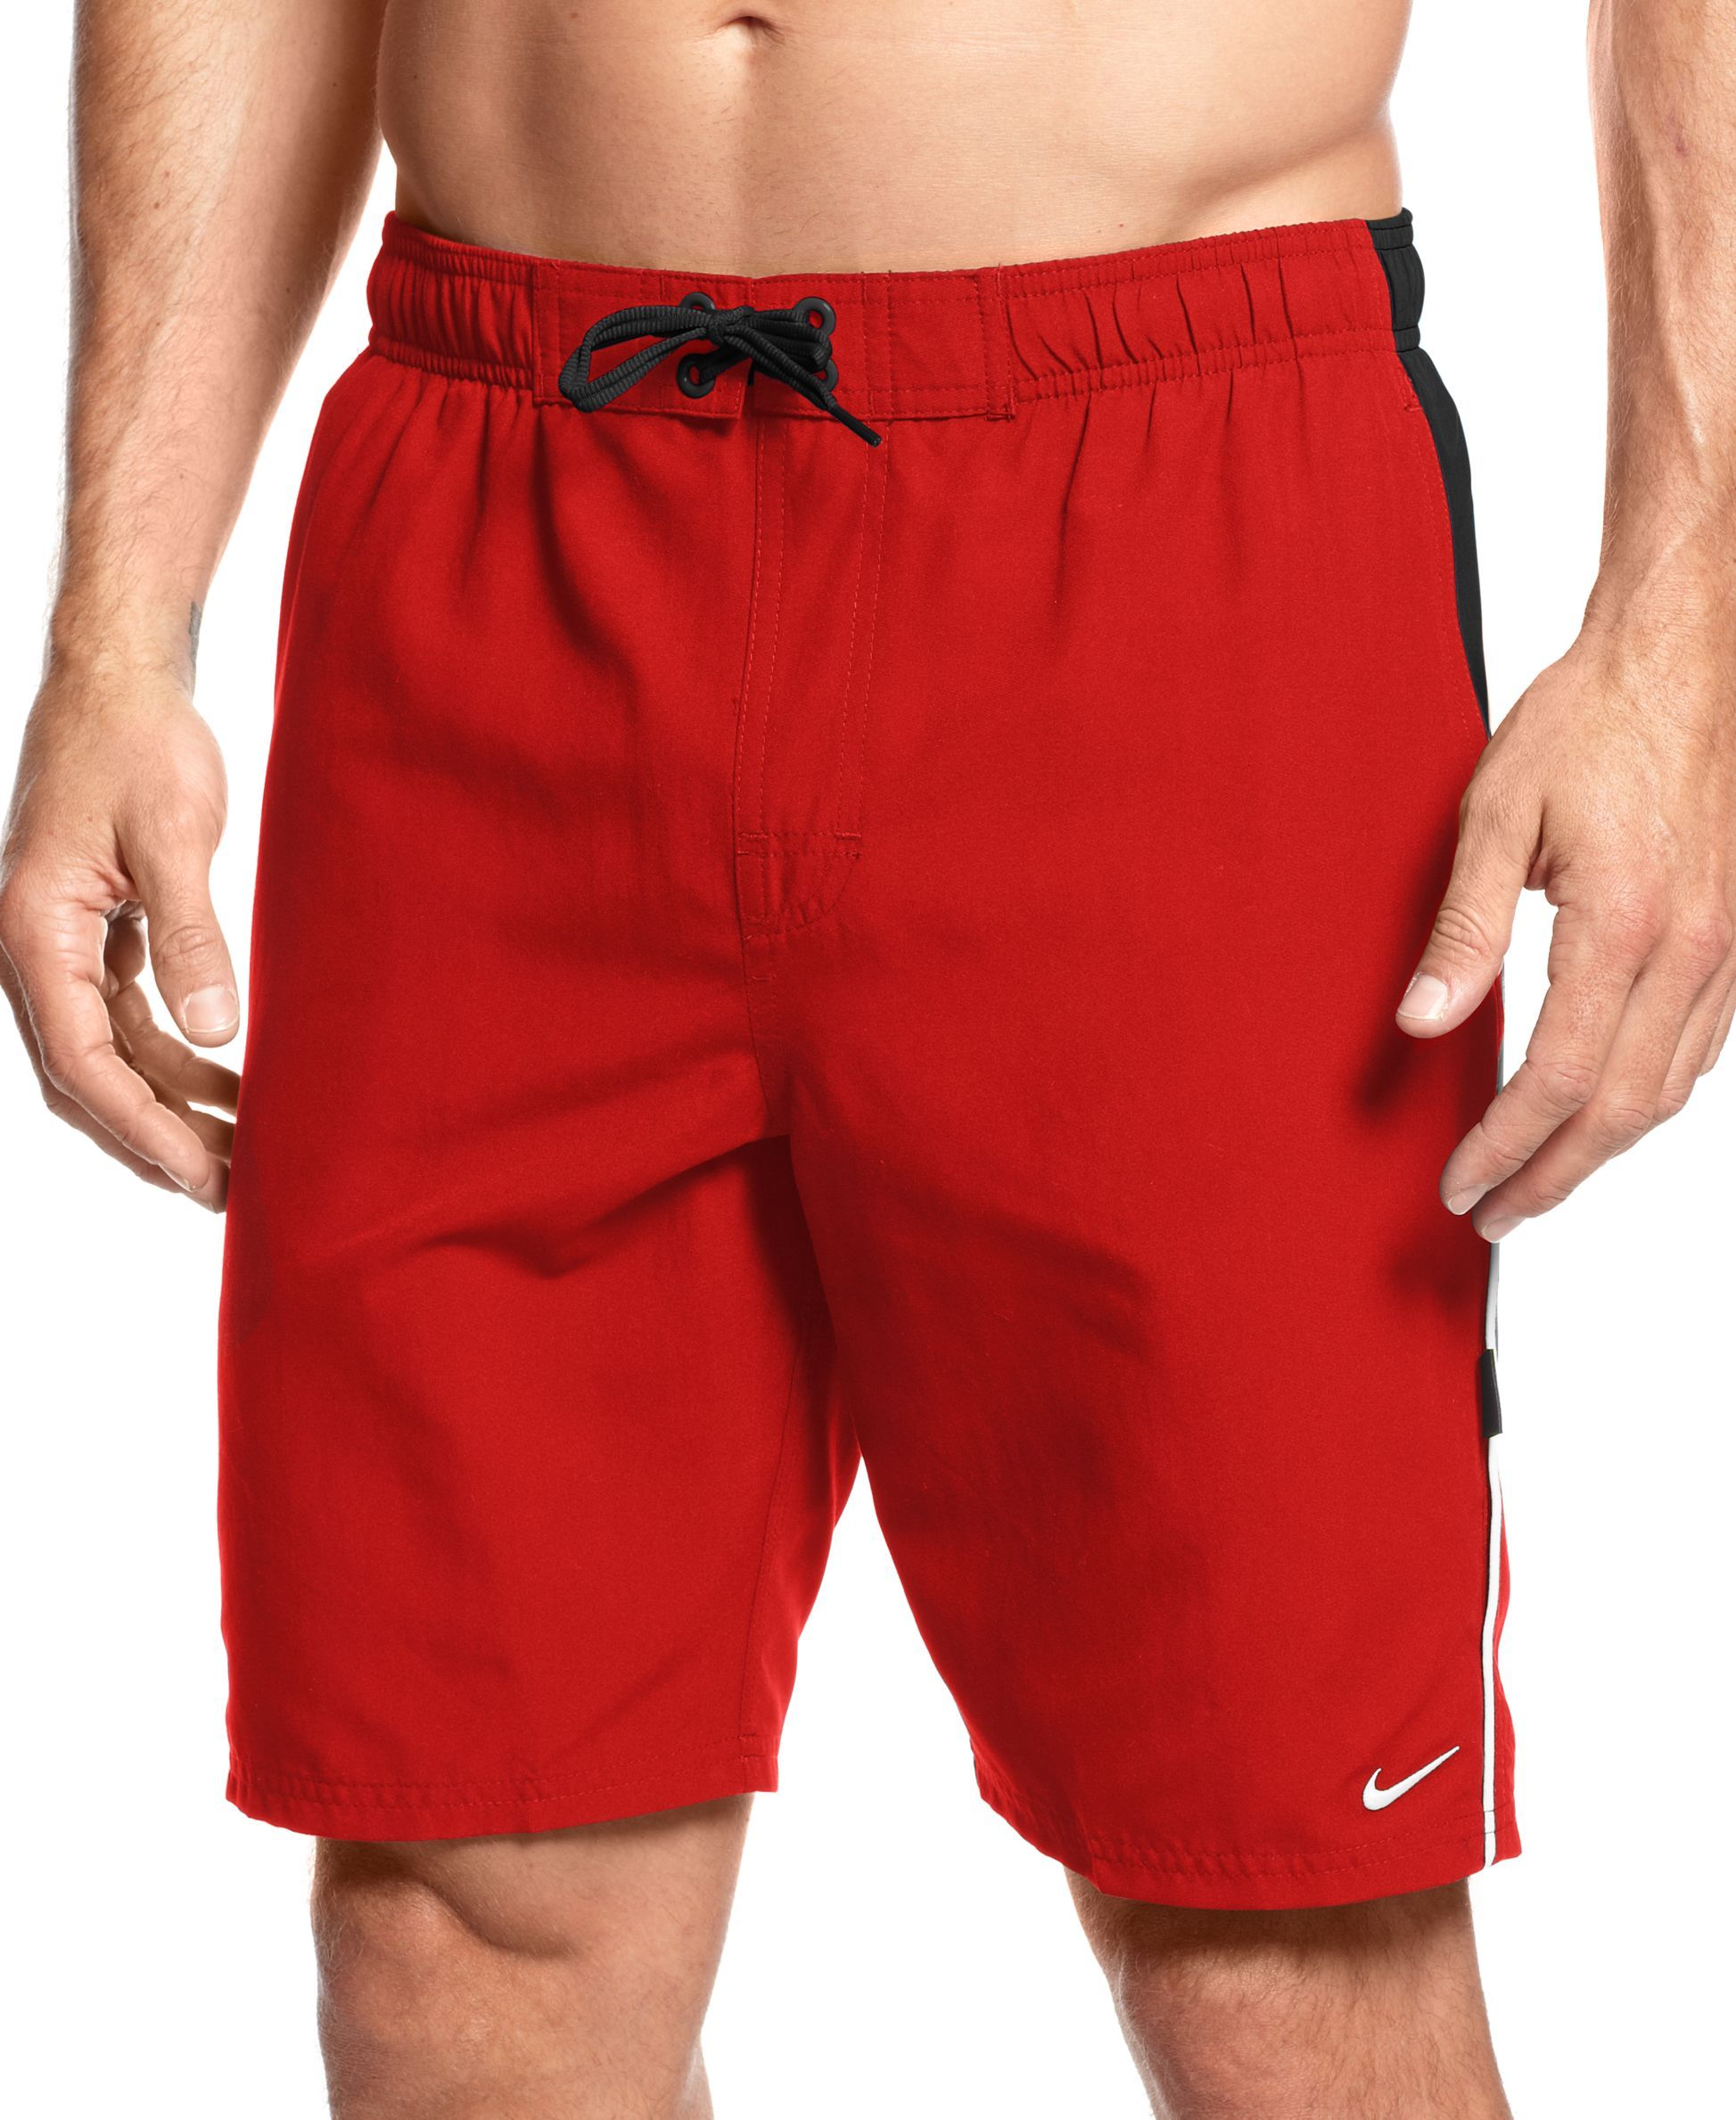 ab23d16504 Nike Big and Tall Volley Swim Trunks   Products